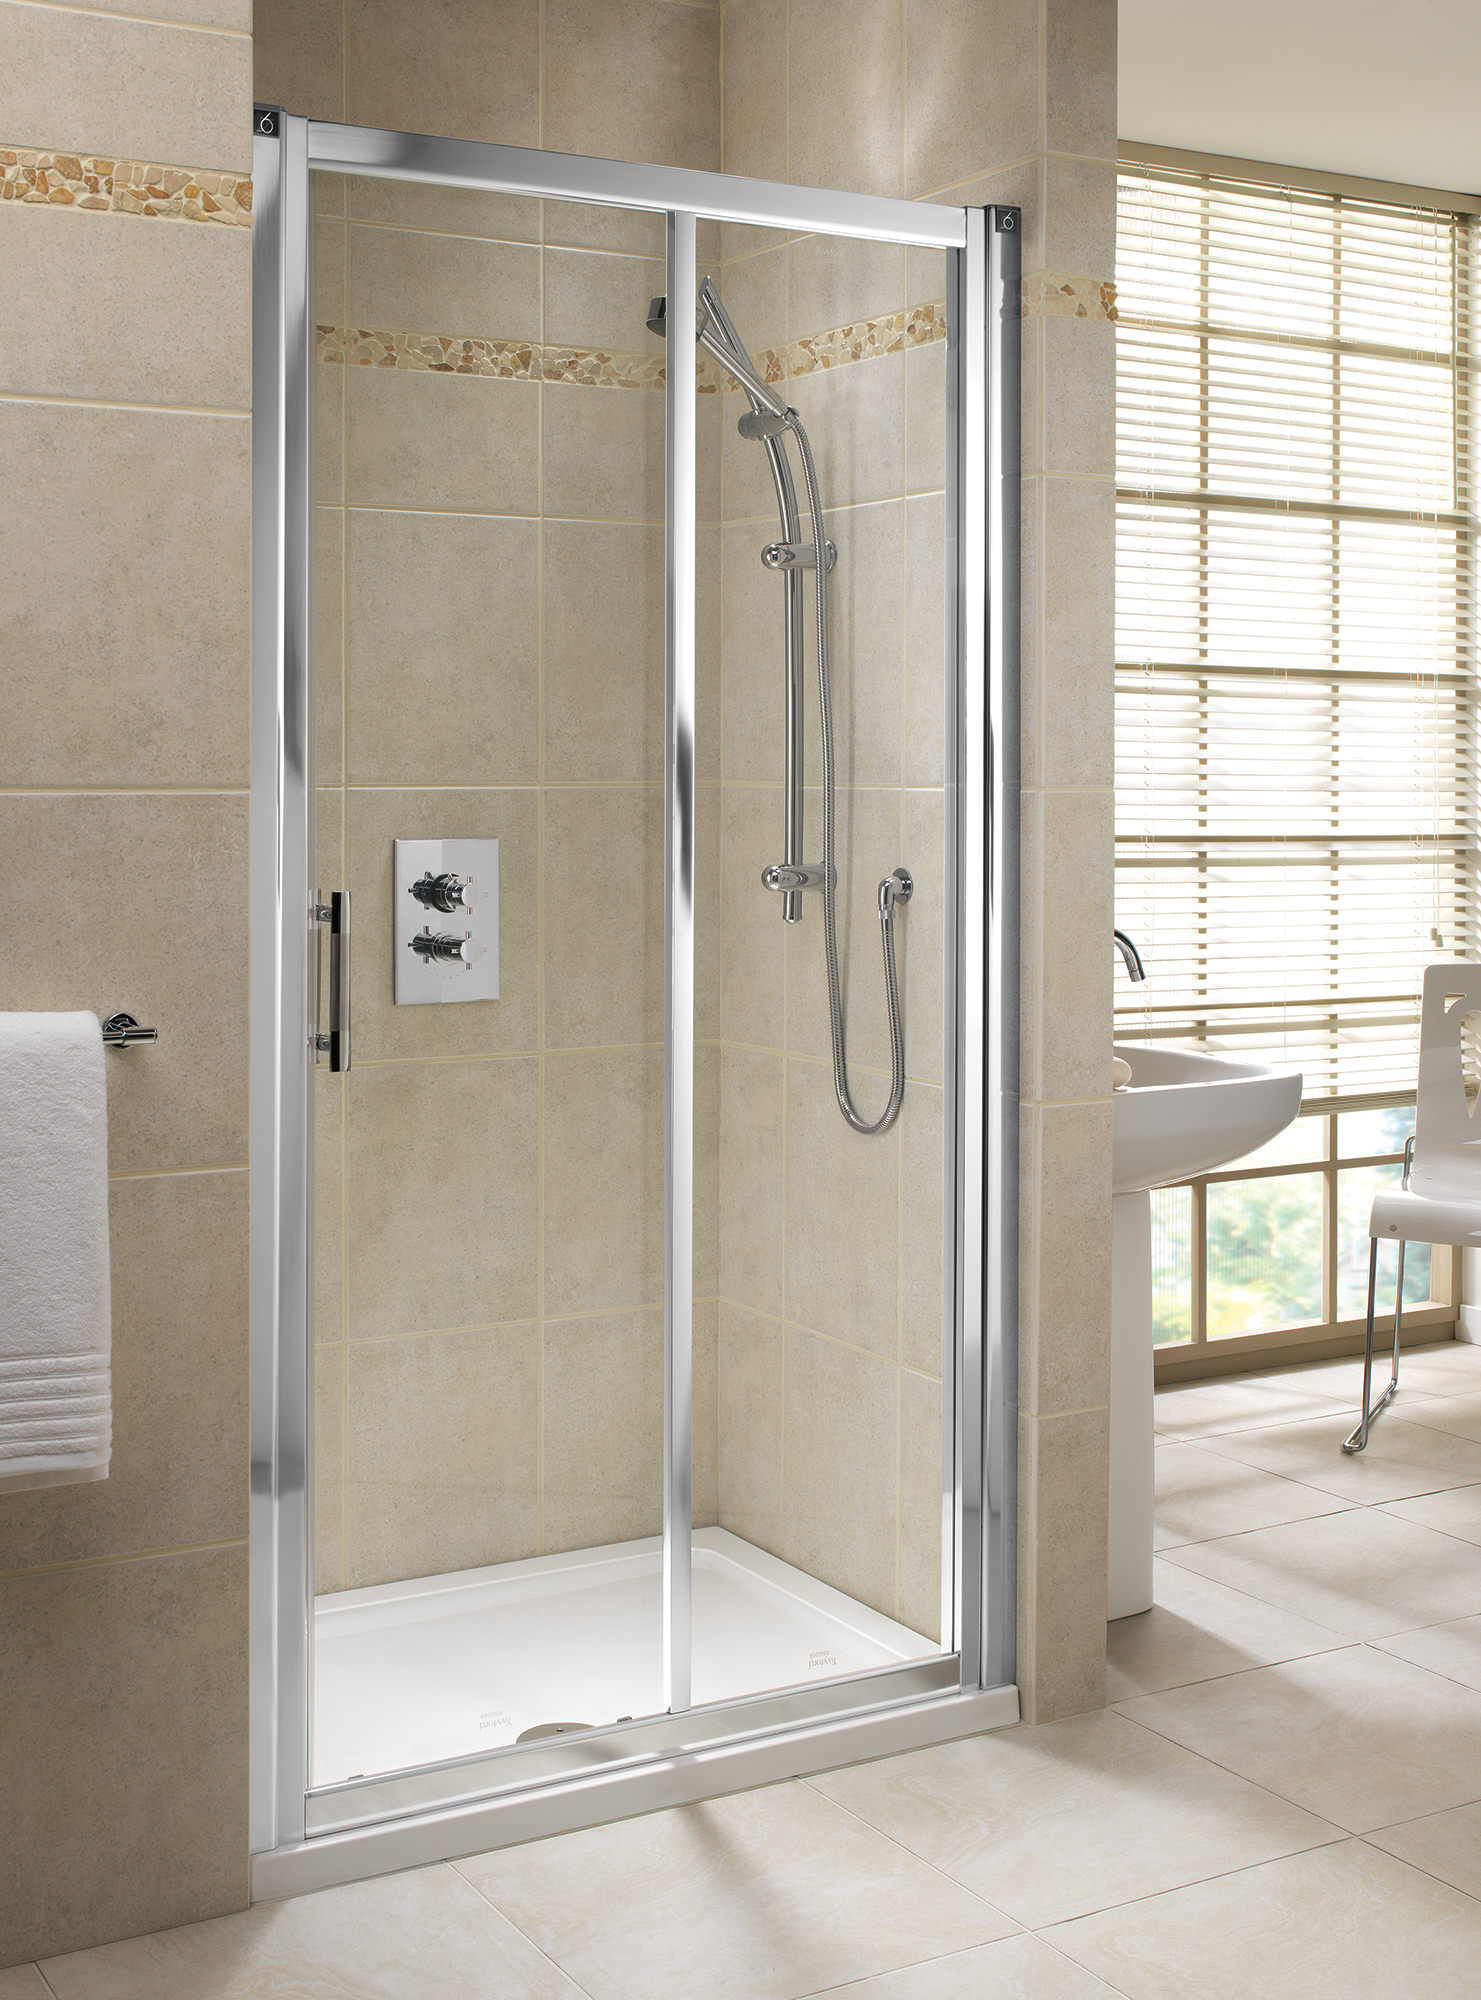 Twyford Geo6 1000mm Sliding Shower Door Left Or Right Hand | G66503CP